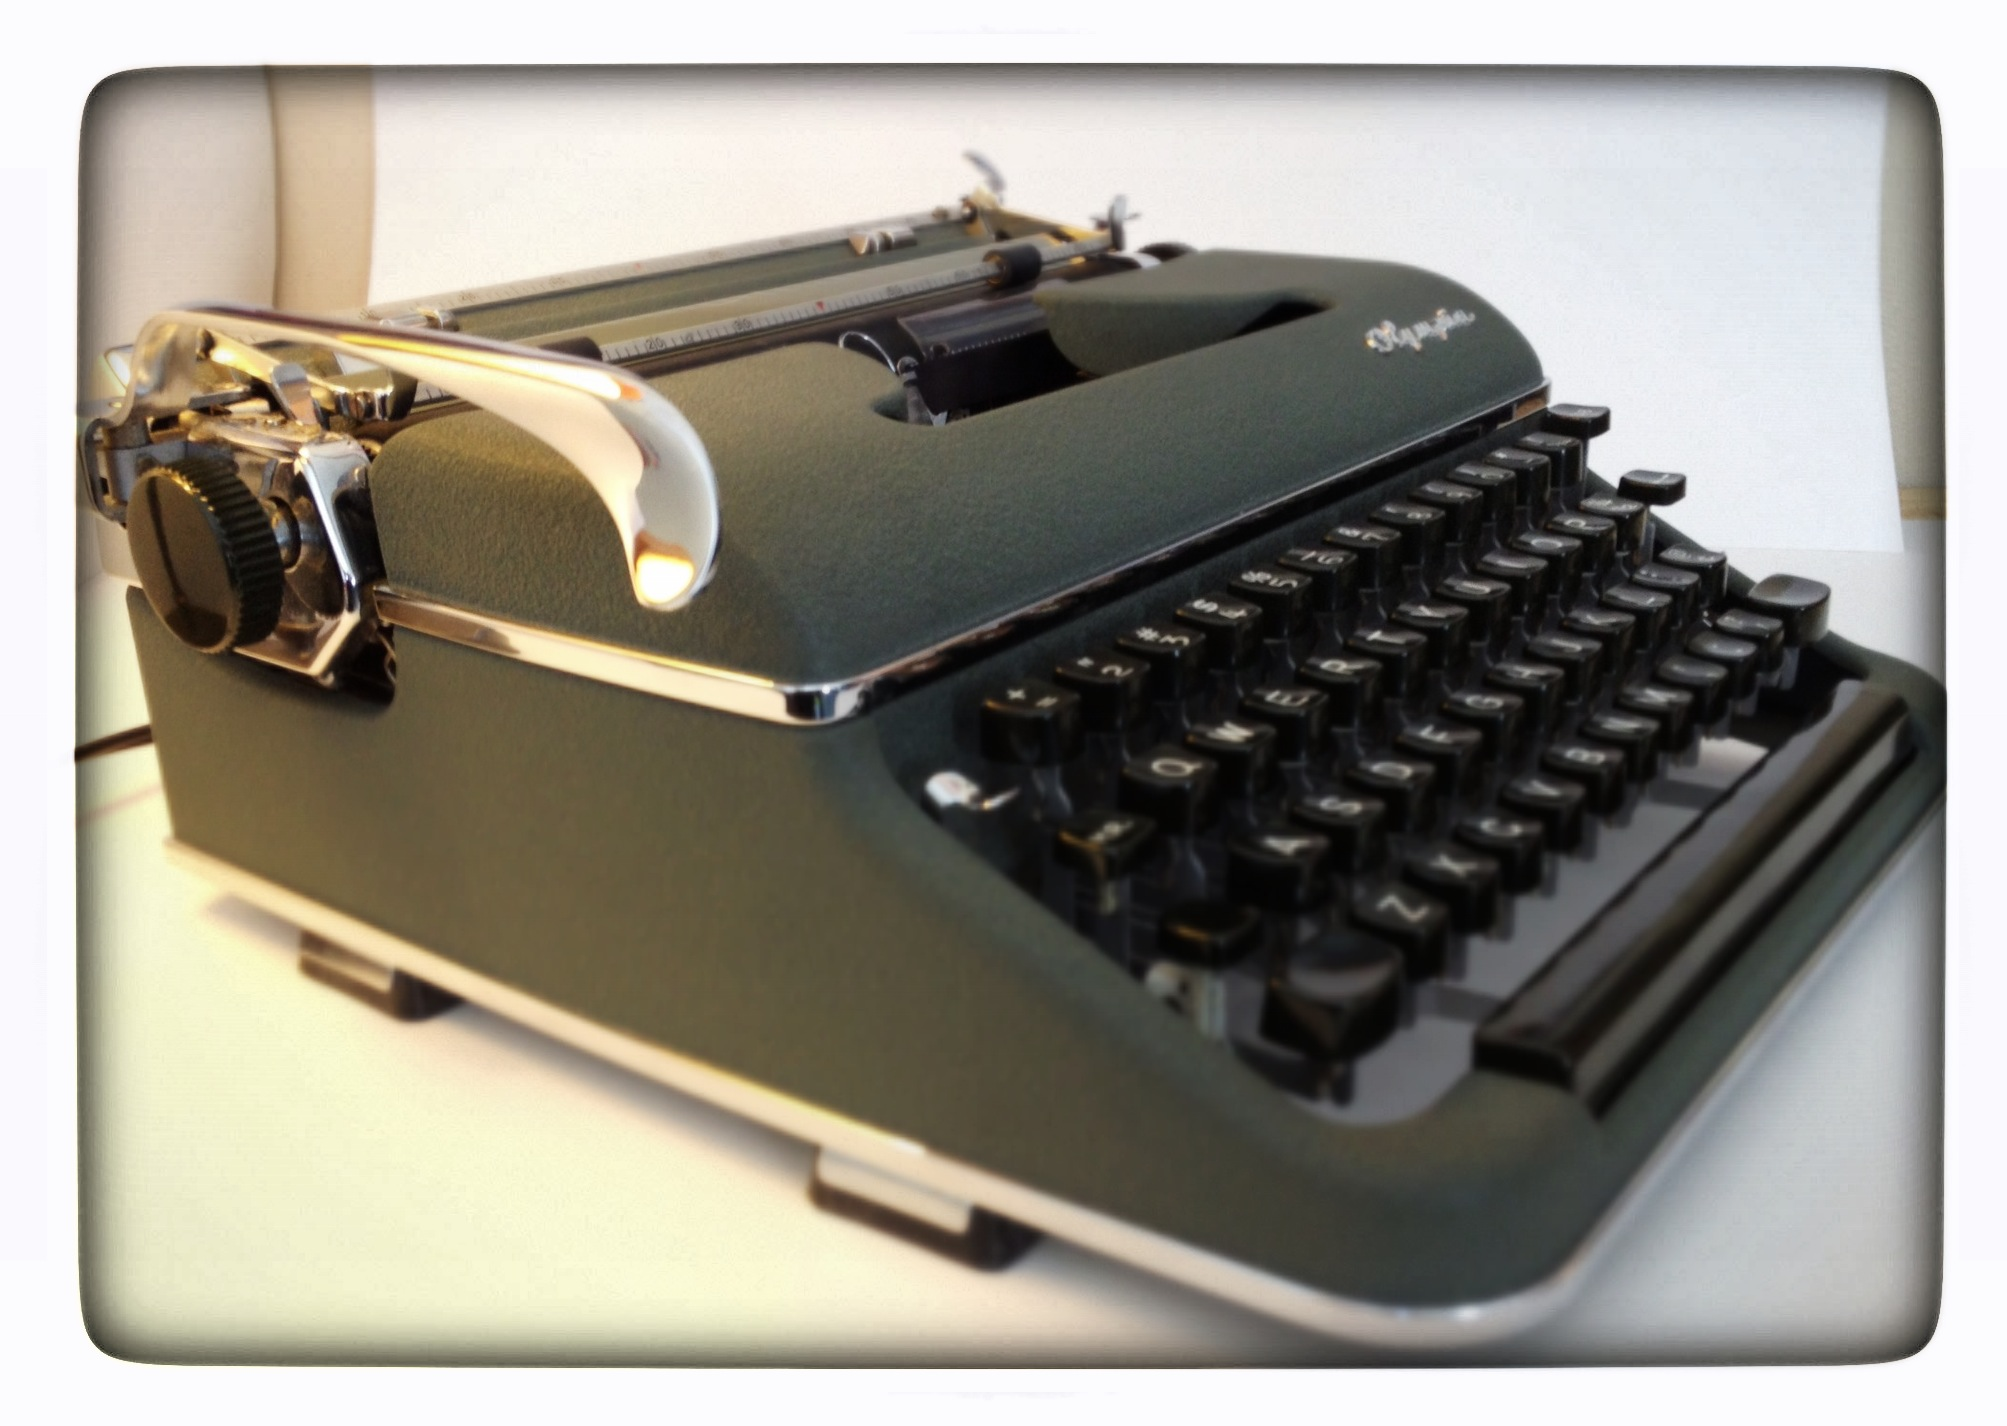 Olympia Sm3 Deluxe Typewriter Review